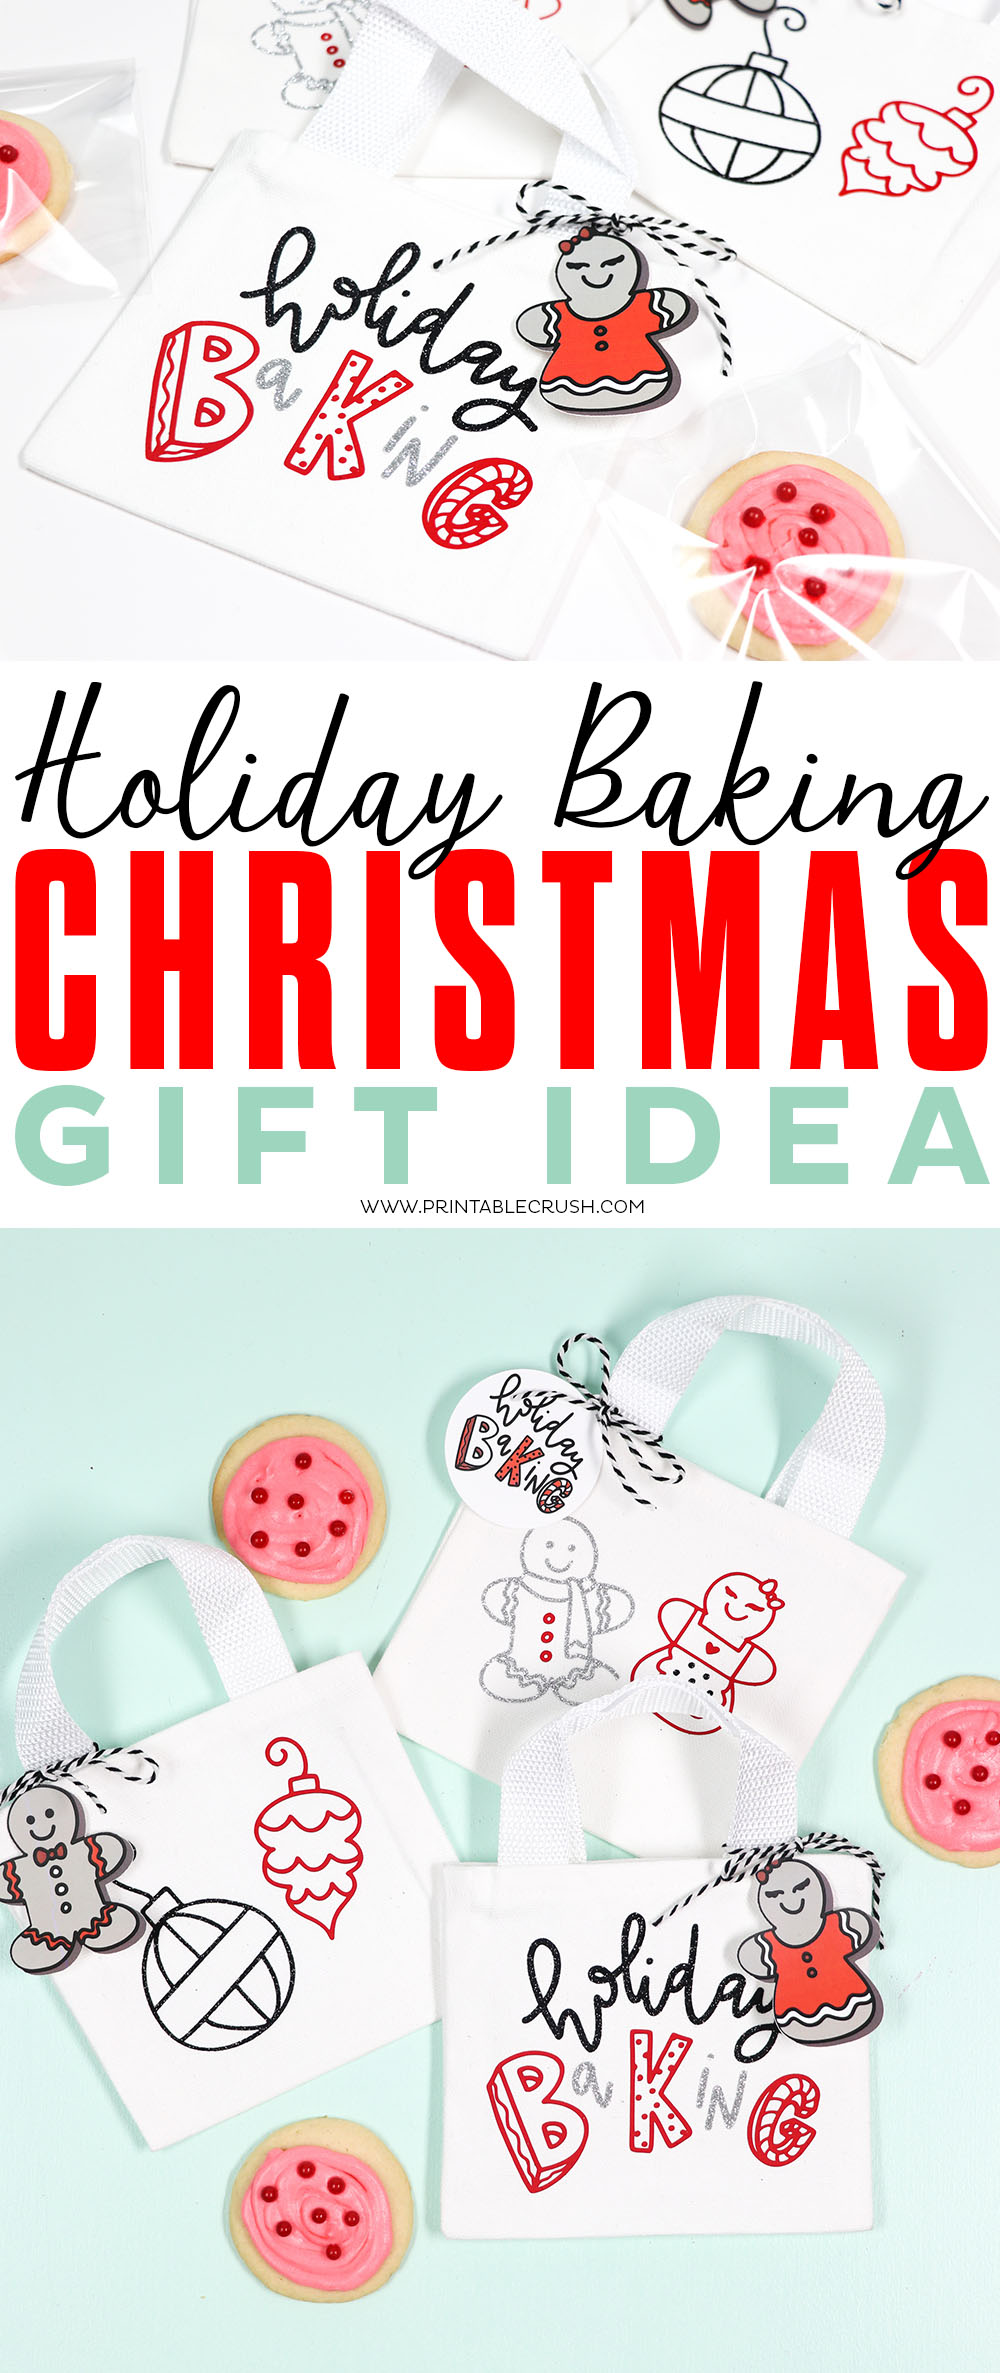 These Holiday Baking Christmas Gifts are too cute and so easy to make with the Cricut EasyPress! #diychristmasgift #christmascookieexchange #cricuteasypress #sayitwithcricut #cricutmade